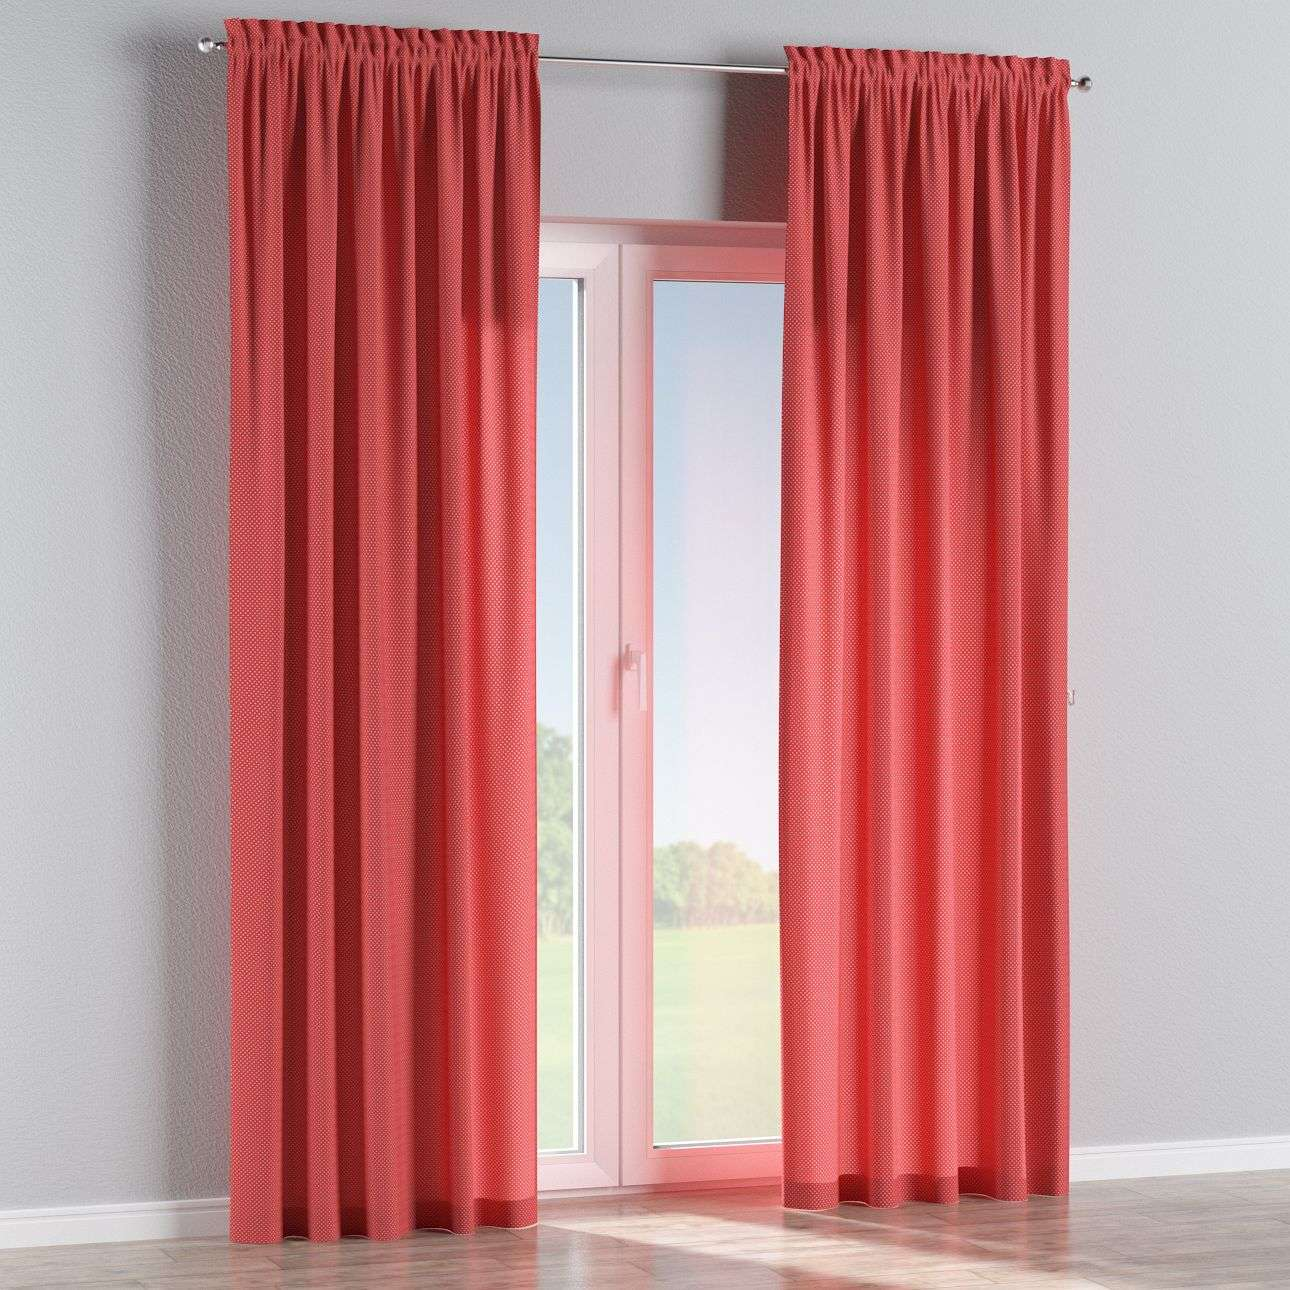 Slot and frill curtains 130 x 260 cm (51 x 102 inch) in collection Ashley, fabric: 137-50